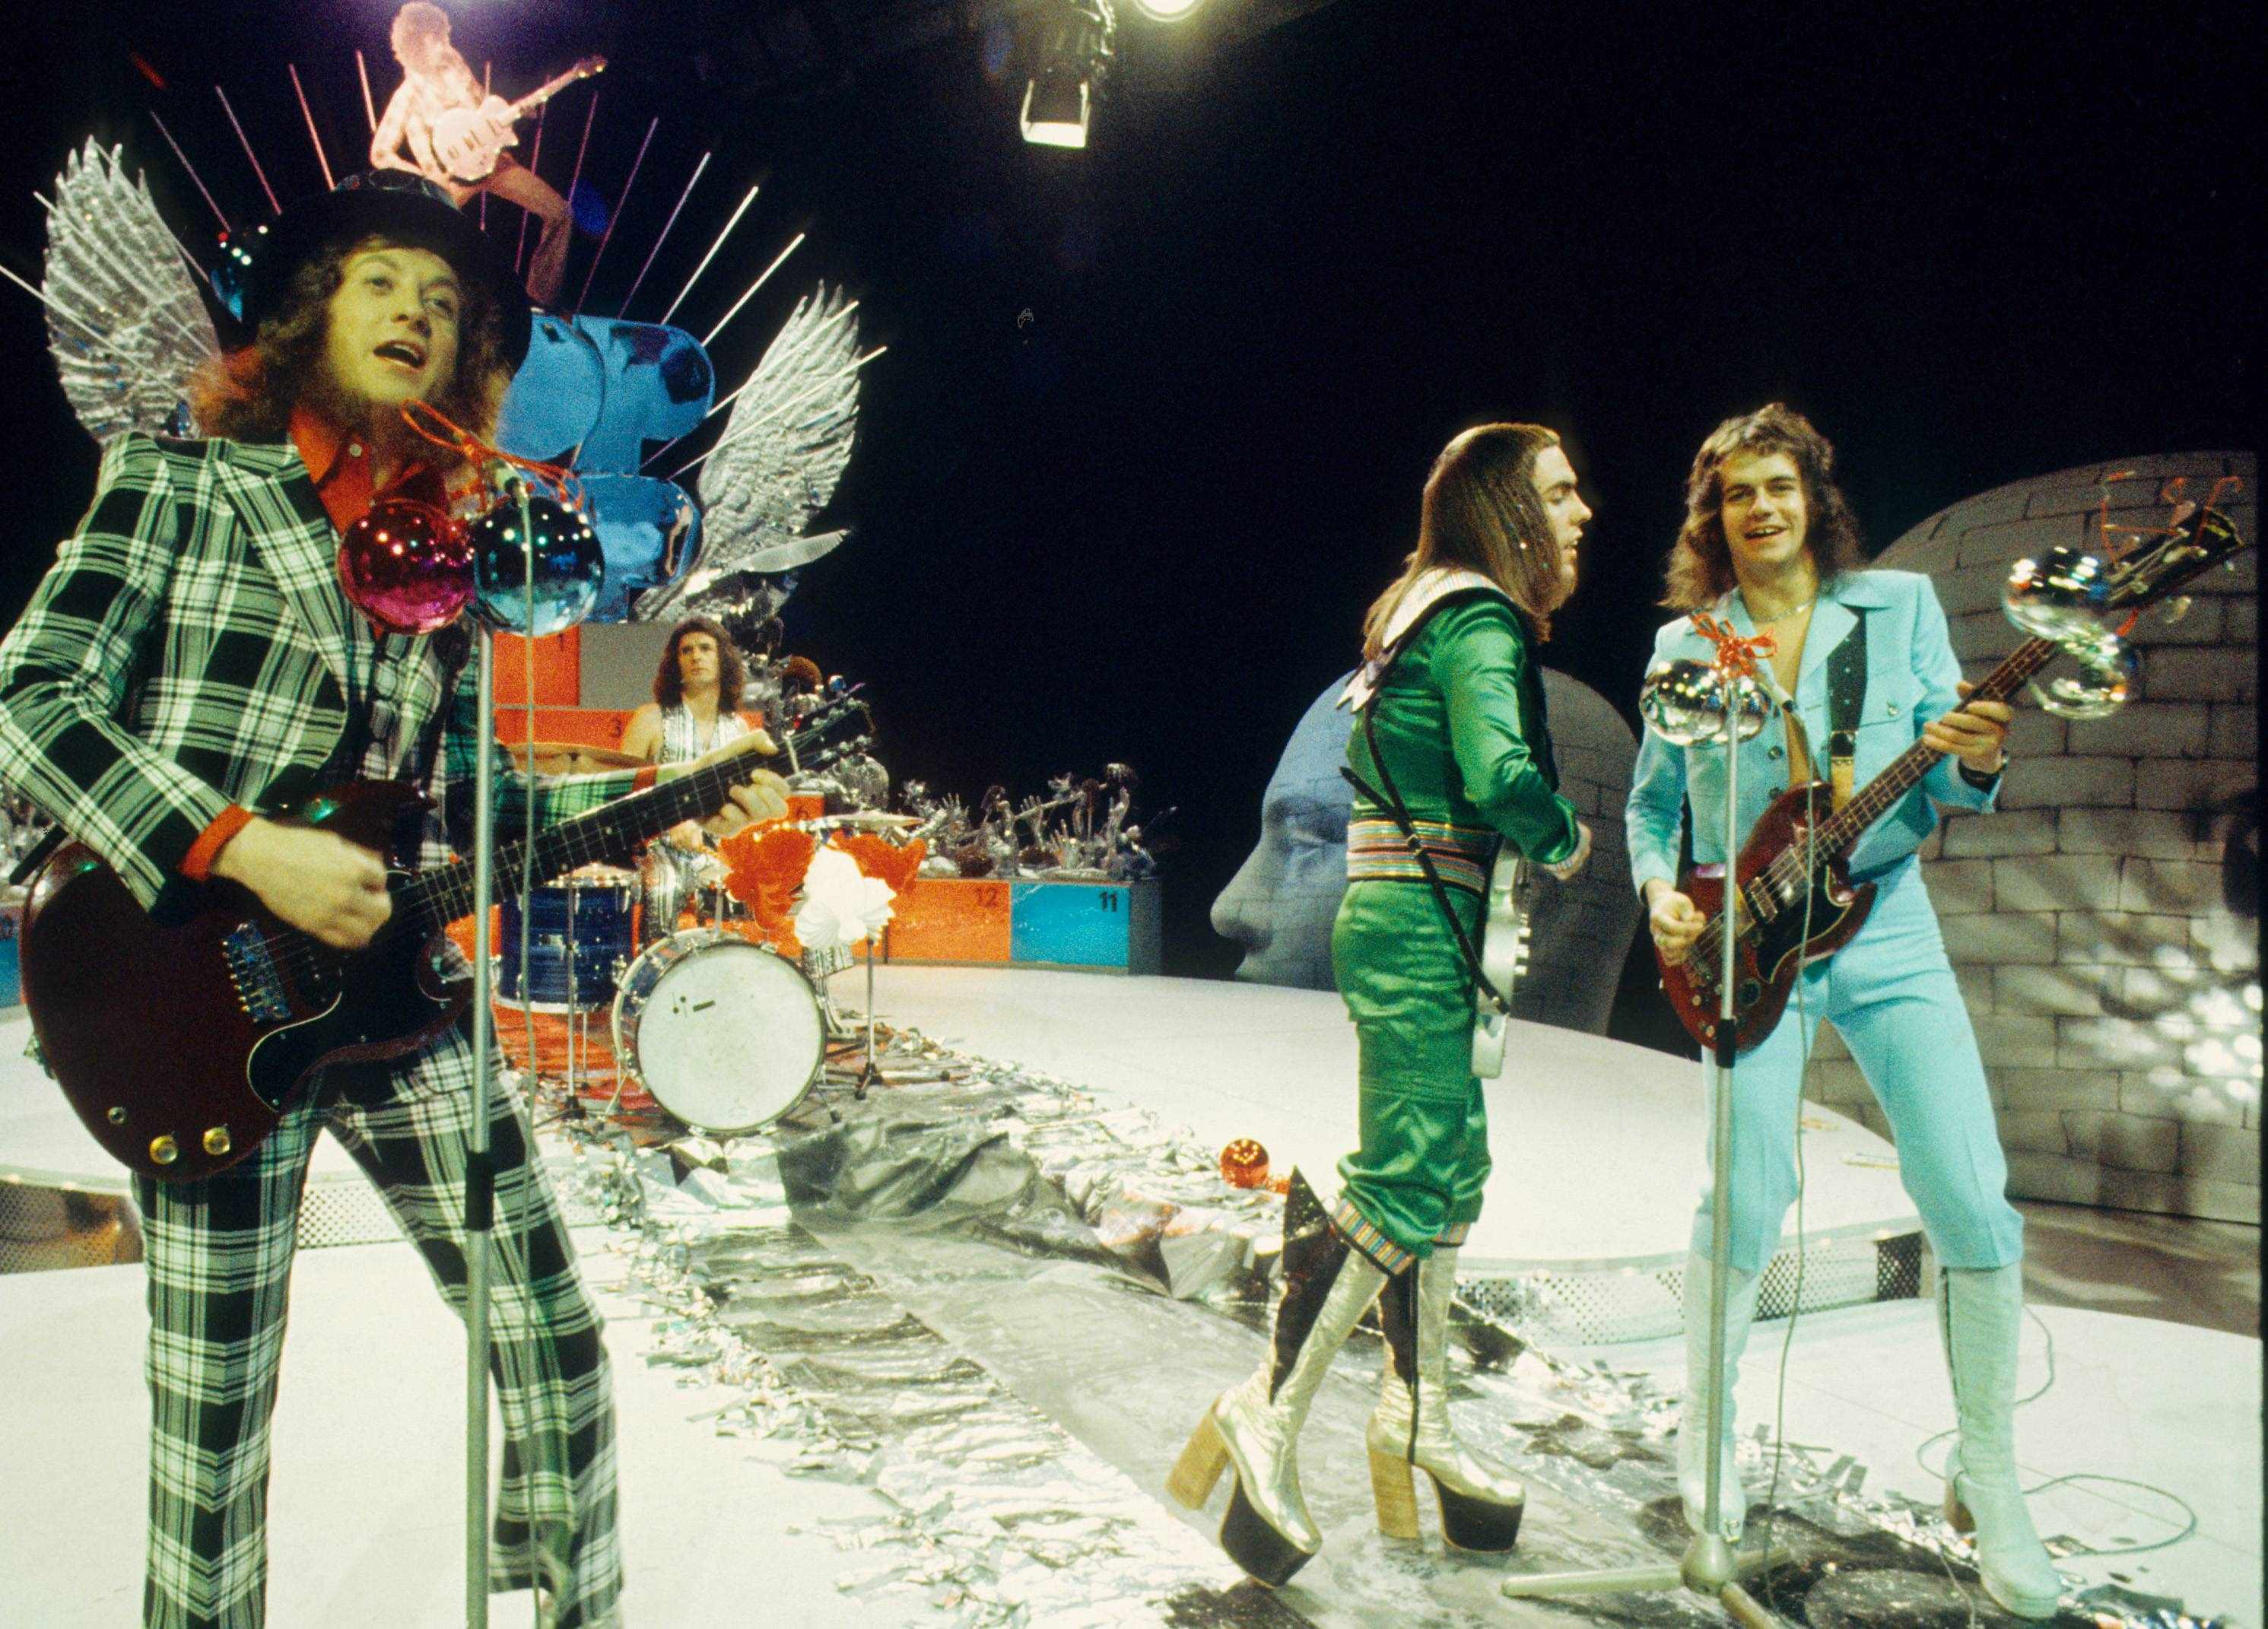 (L-R) Noddy Holder, Don Powell, Dave Hill and Jim Lea of Slade perform on a Christmas TV show in December 1973 (Getty, TG)